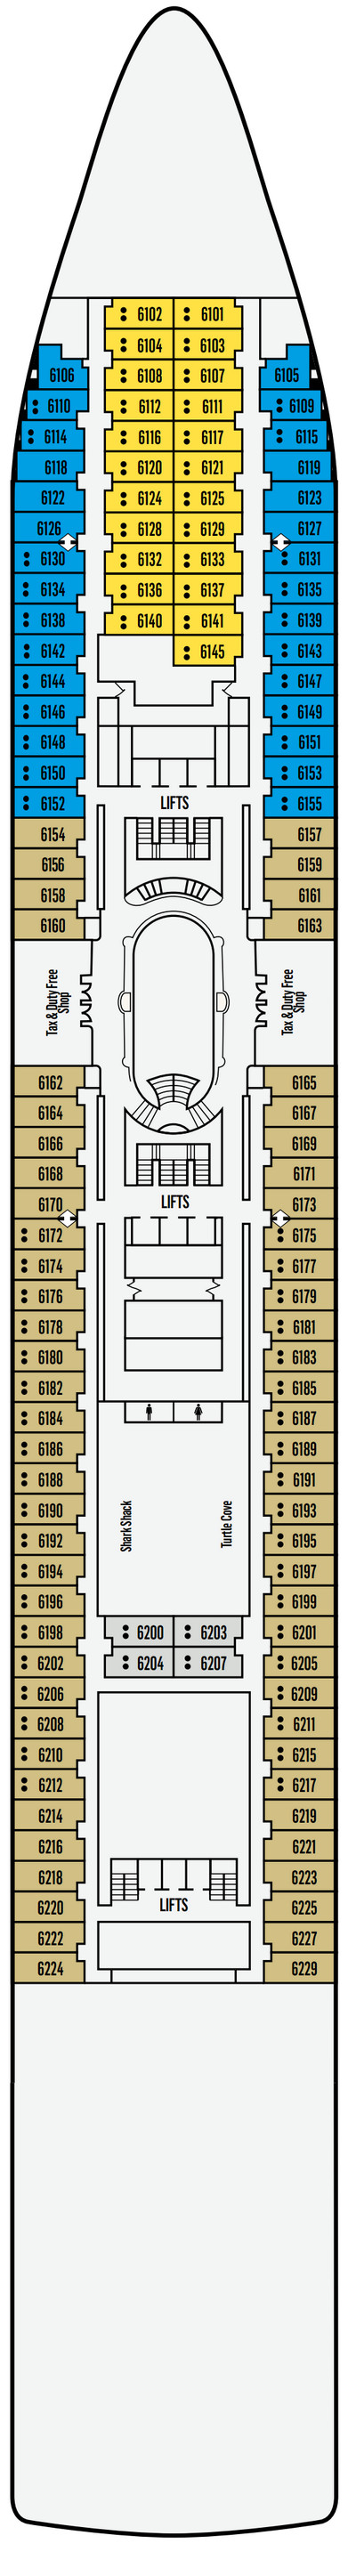 P&O - Pacific Dawn Deck 6 layout